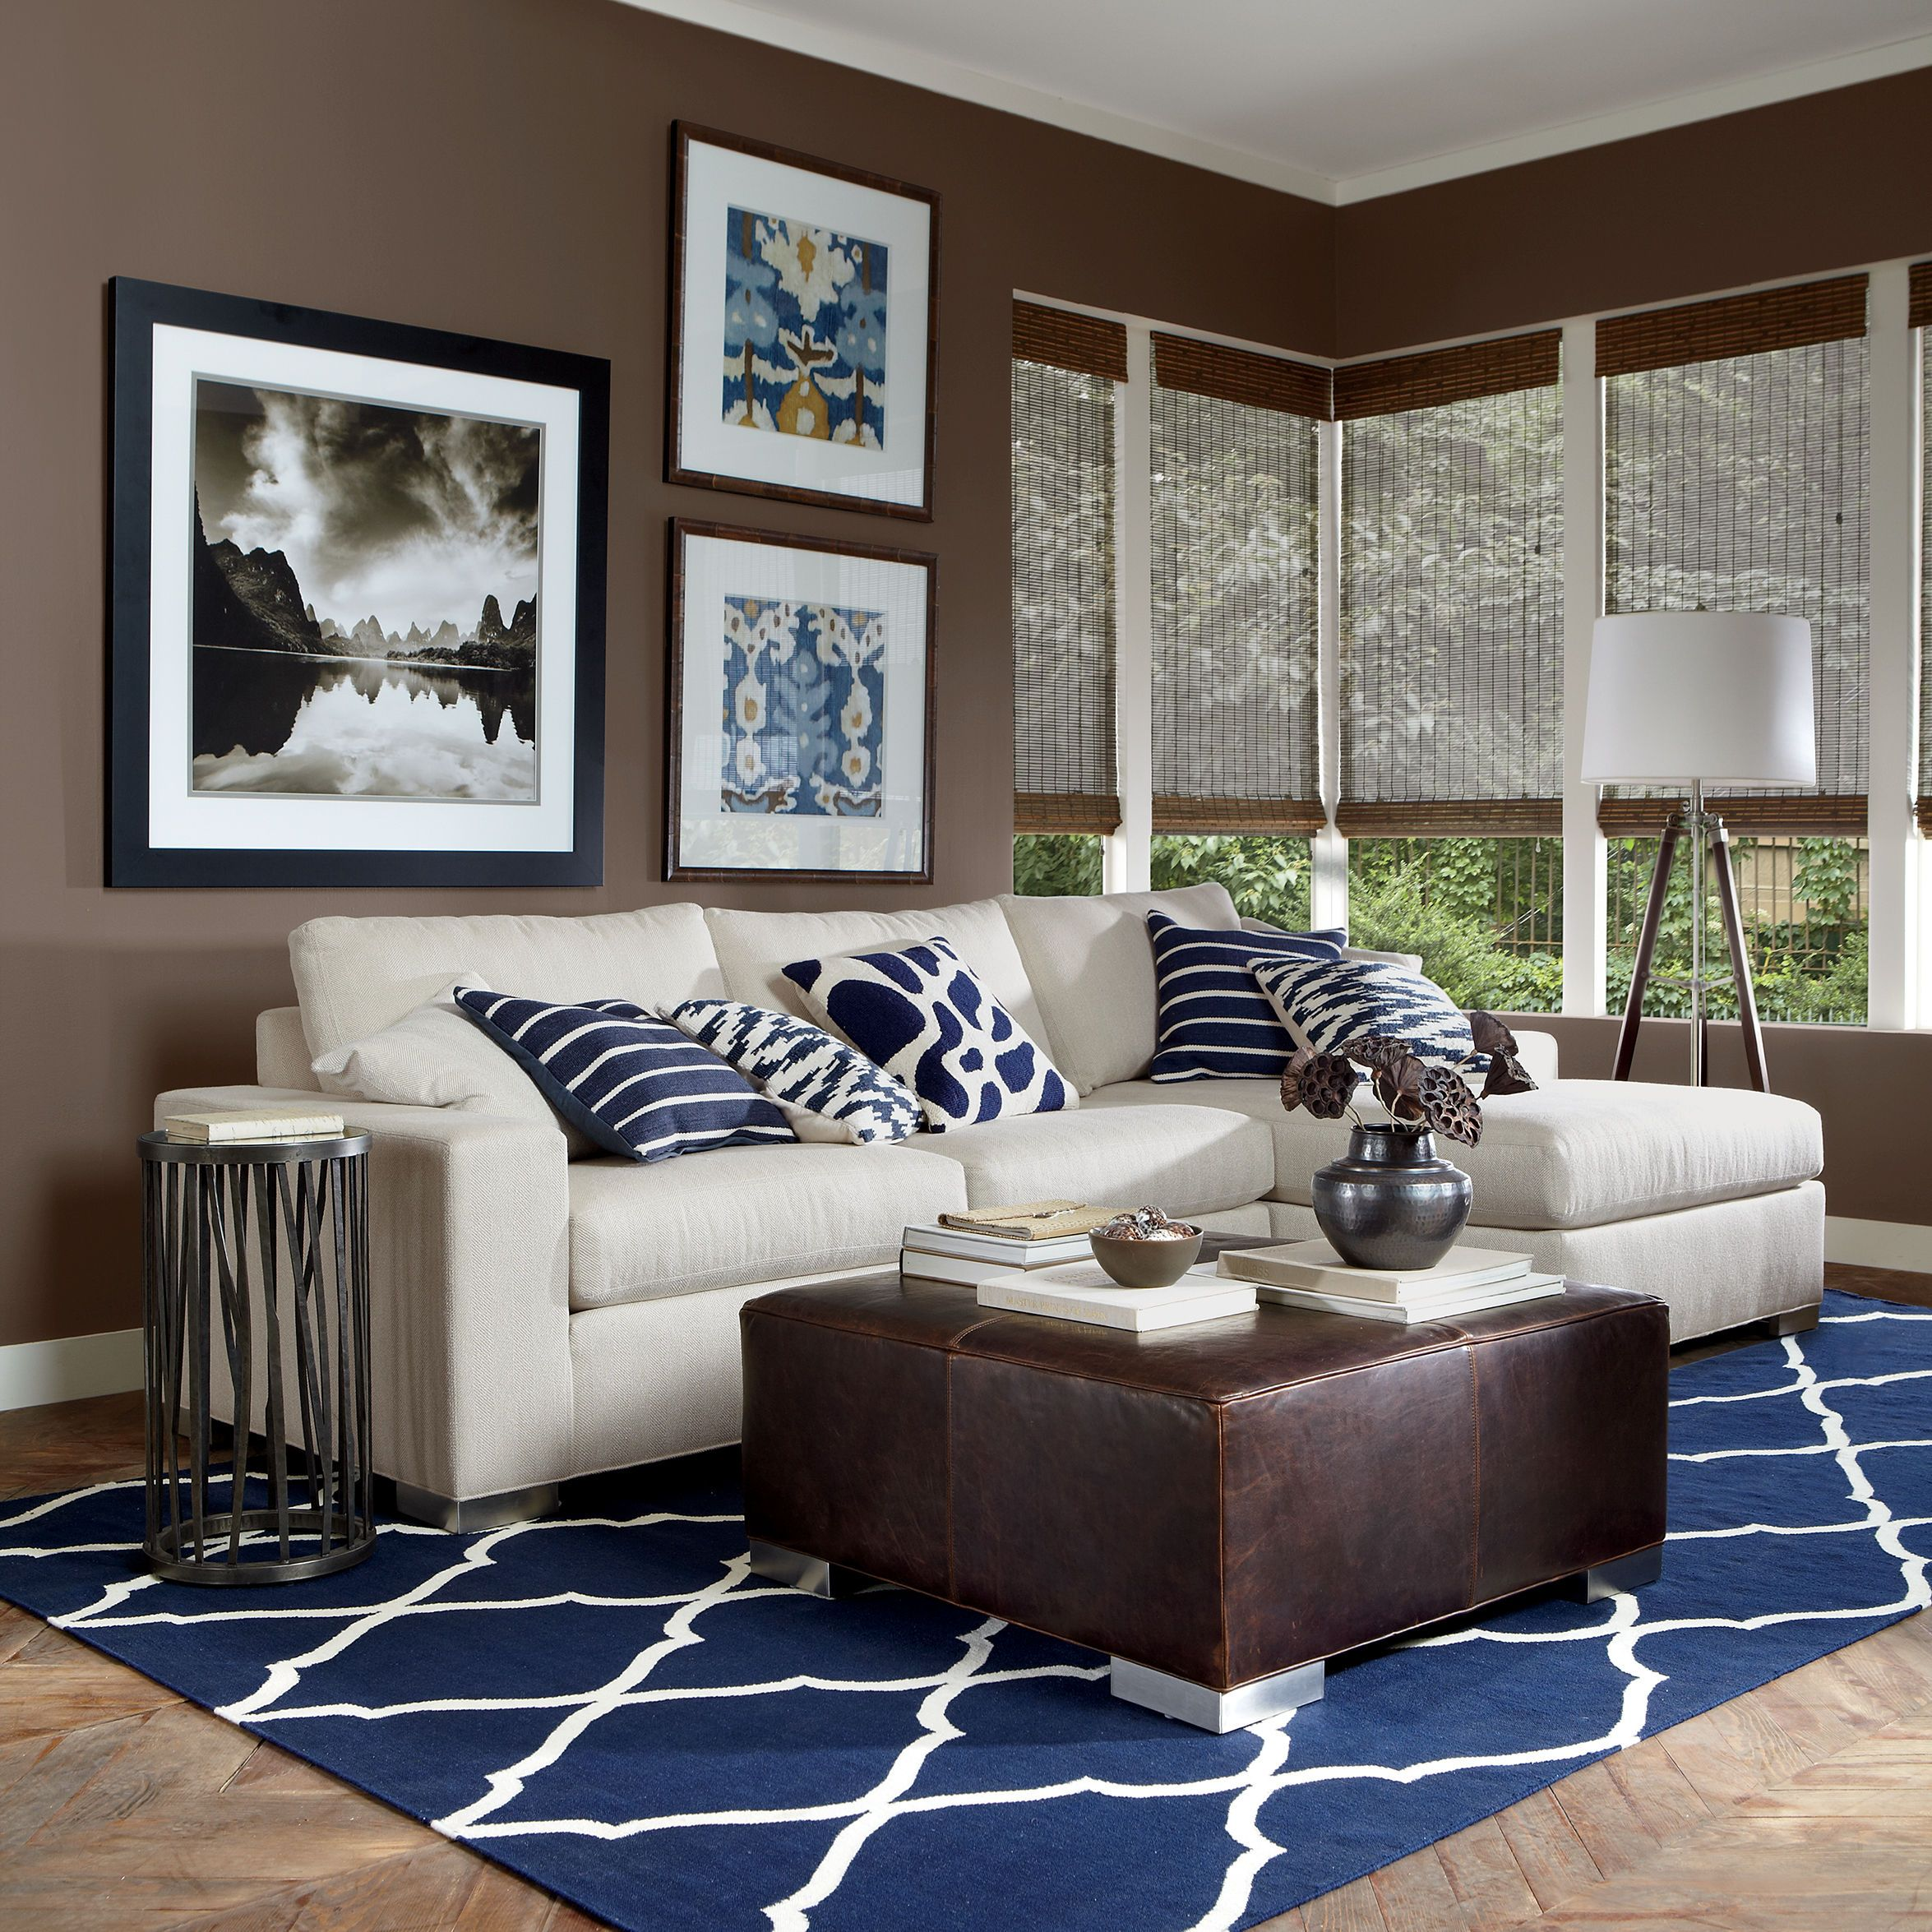 Ethan allen living room blue living rooms ethan allen living rooms pinterest living Black white blue living room